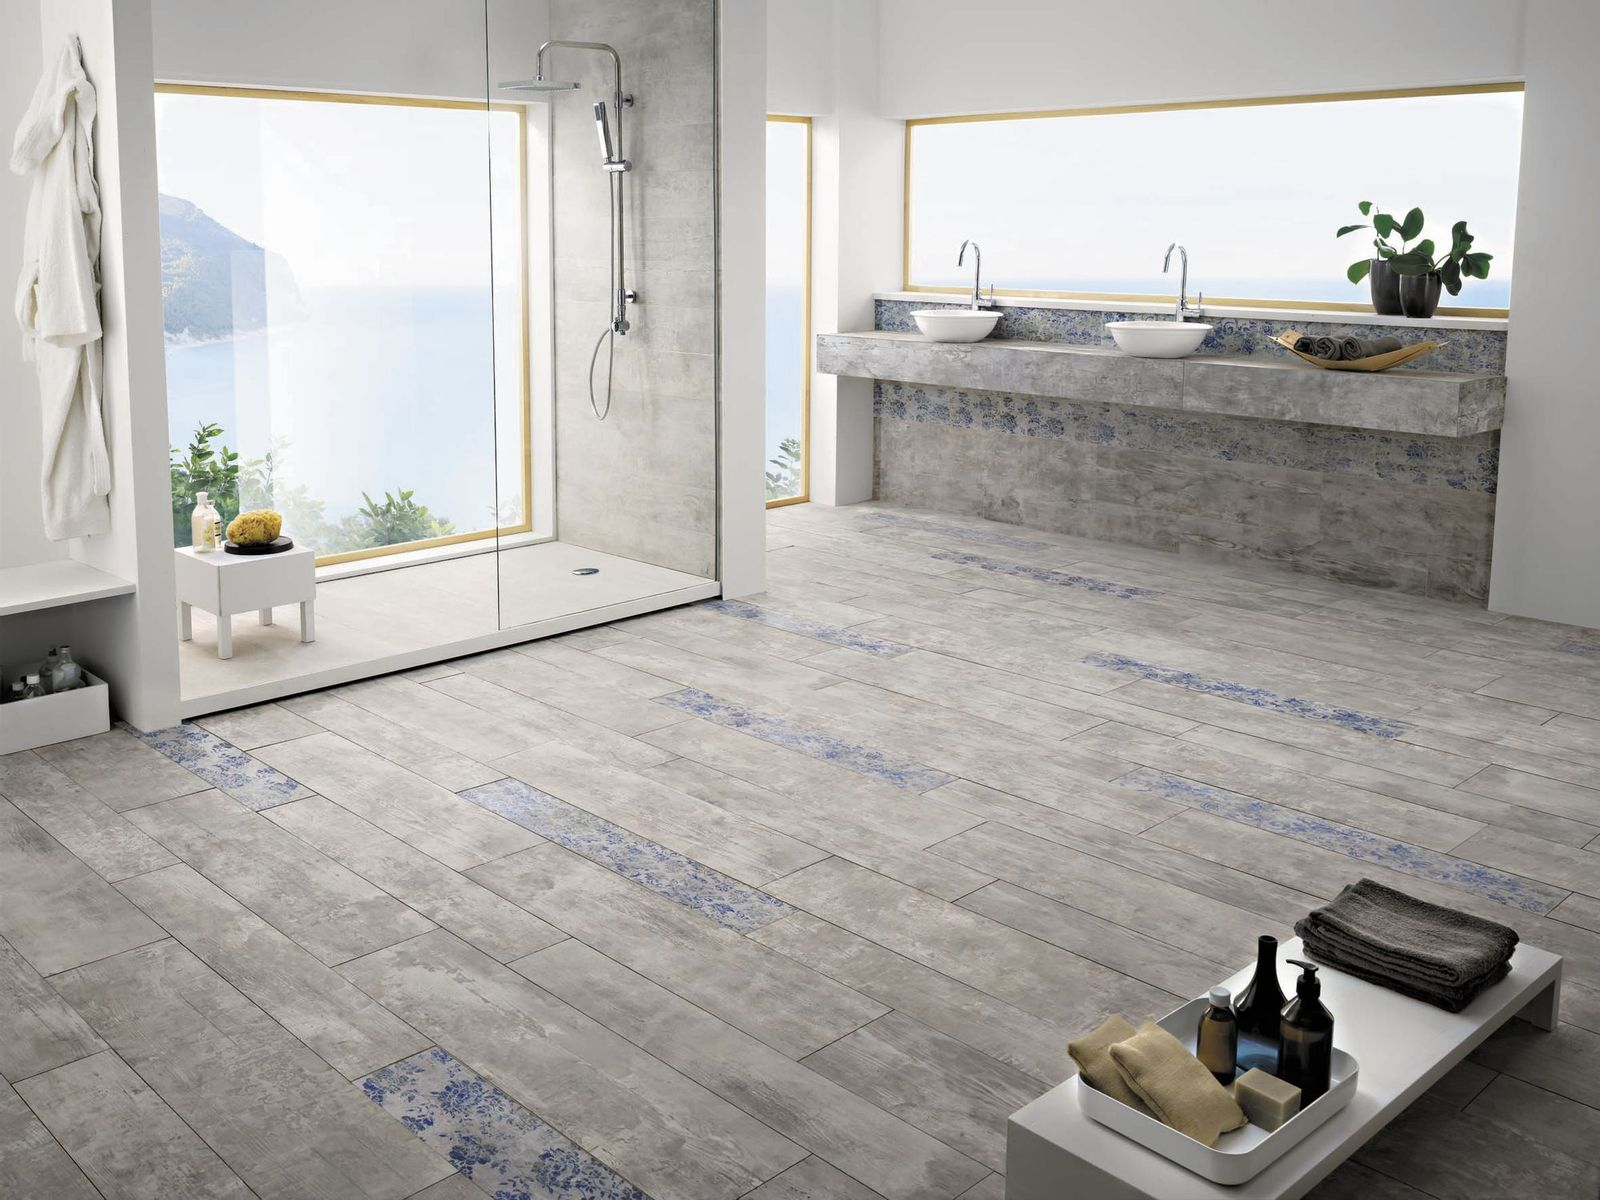 3 Important Tips For Selecting Bathroom Flooring